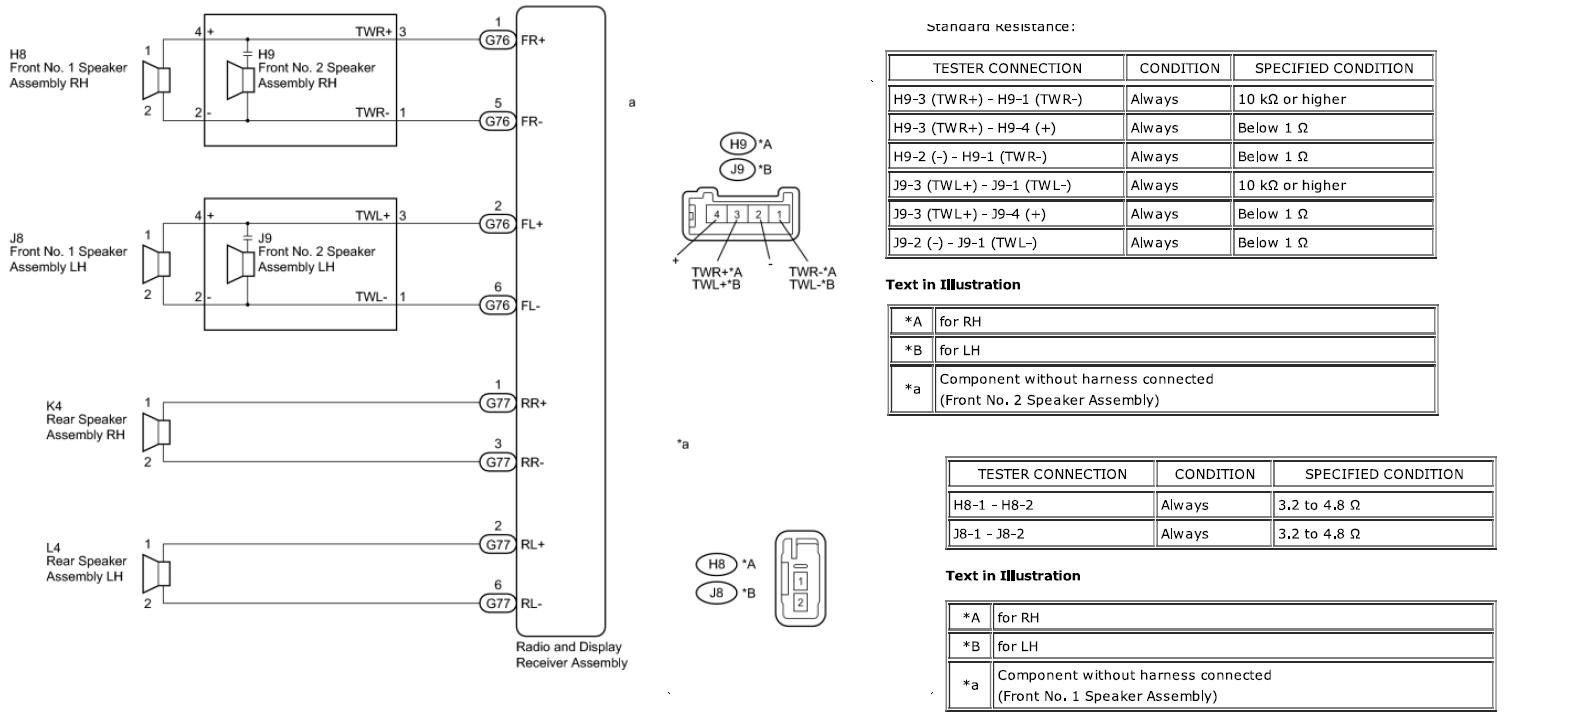 pioneer deh p4000ub wiring diagram efcaviation com wiring diagram for pioneer fh-x700bt at bakdesigns.co